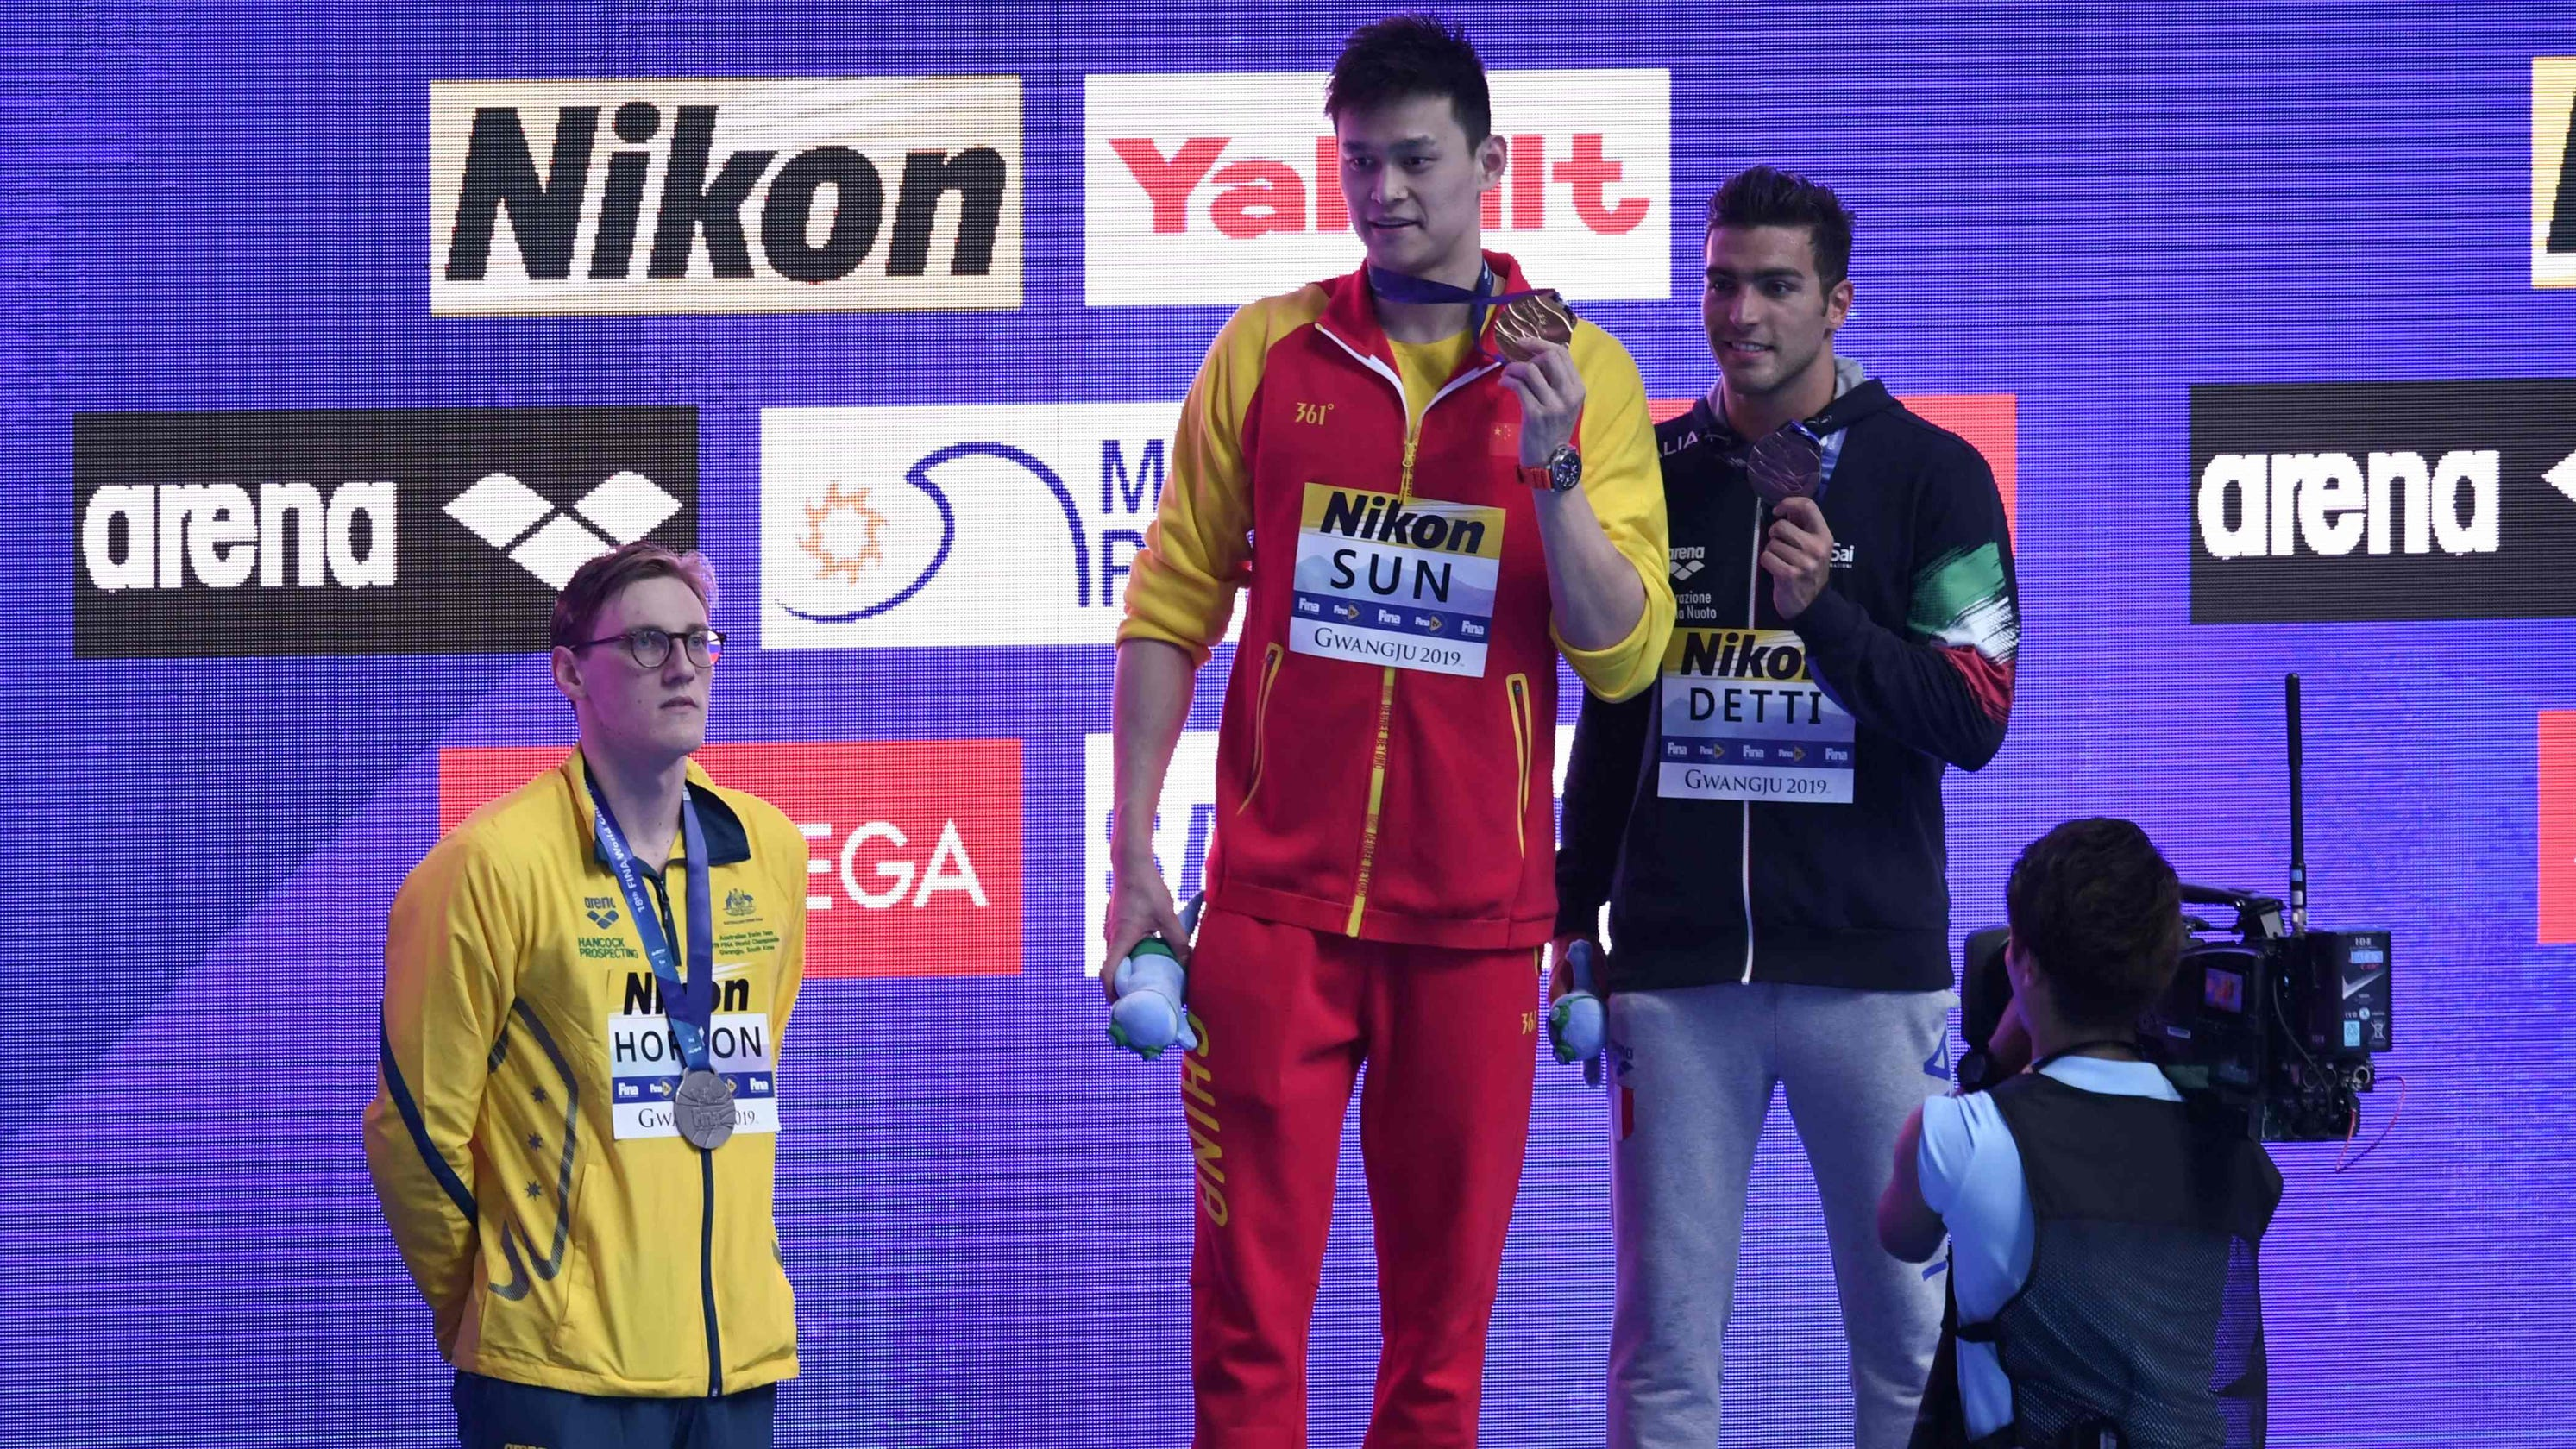 Australian swimmer Mack Horton refuses to share podium with Chinese rival he called 'drug cheat'